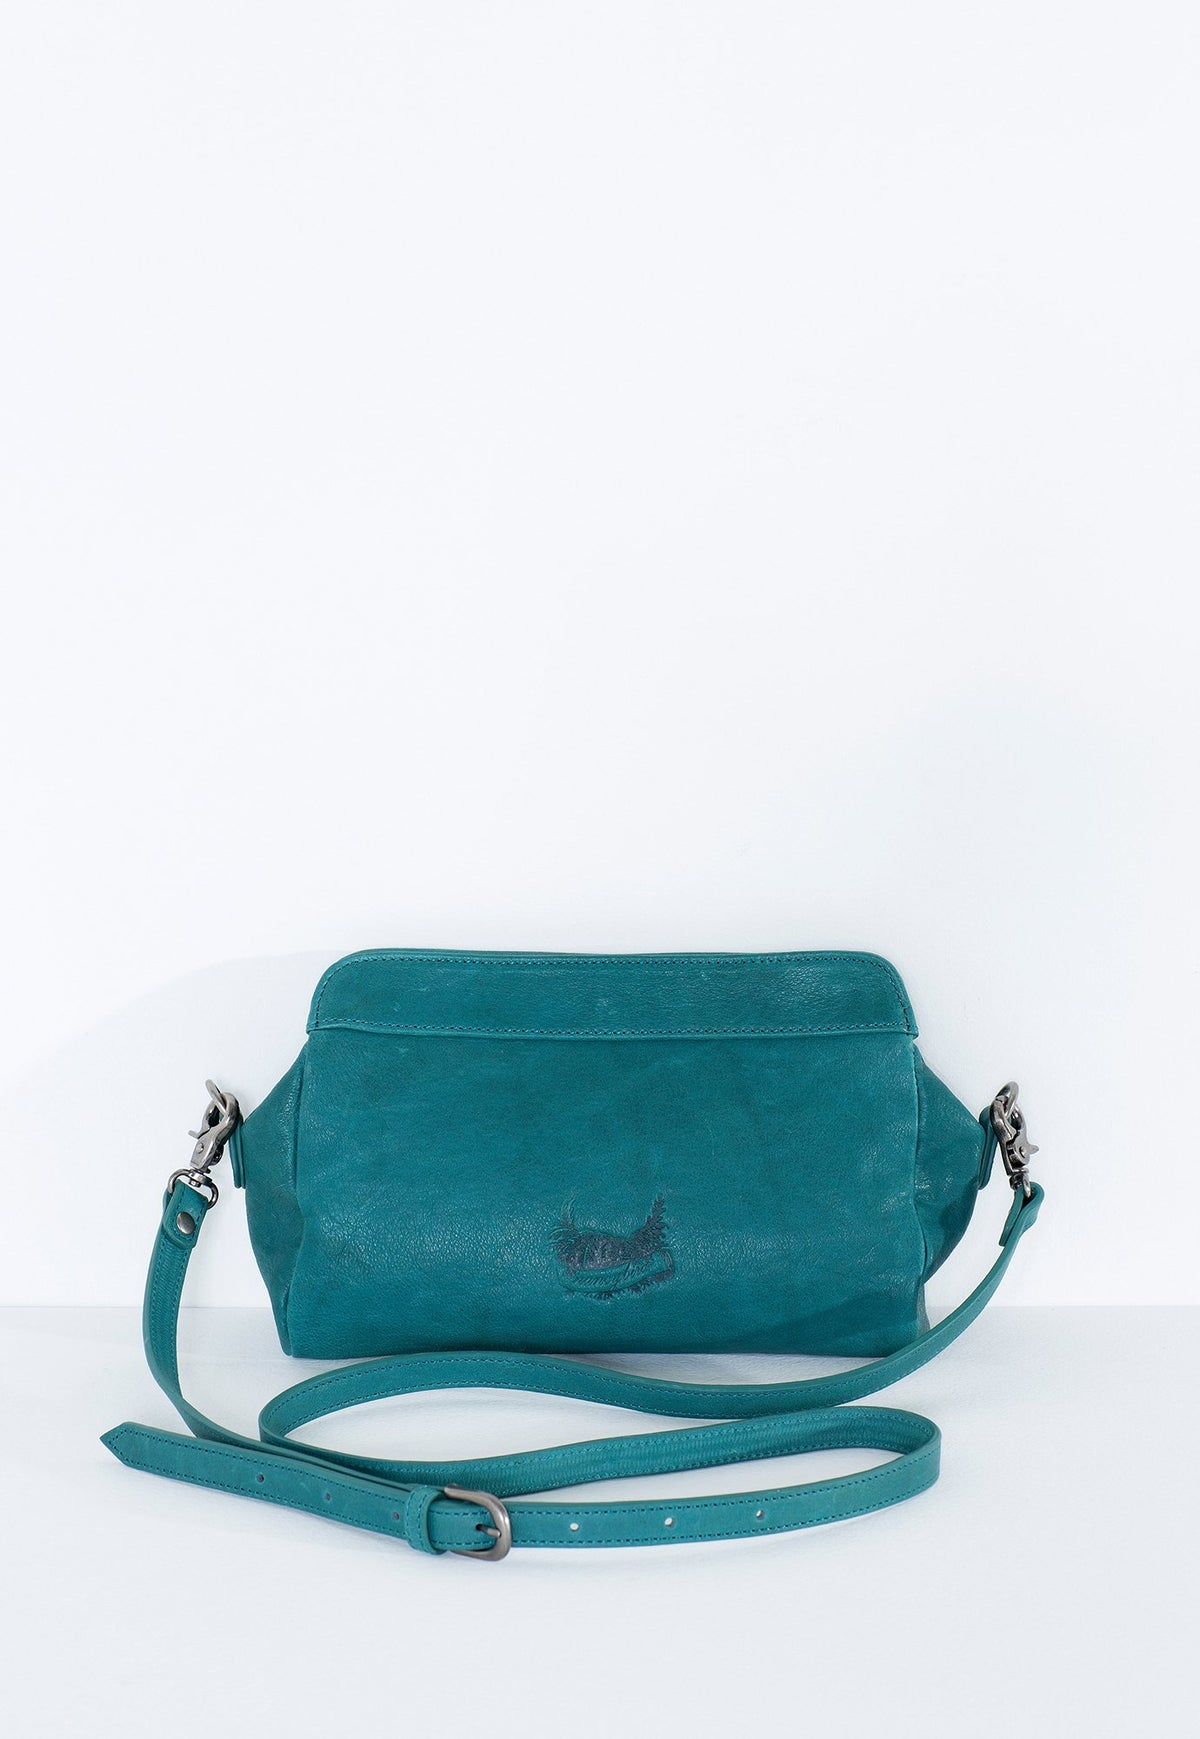 Woven Clutch - Teal